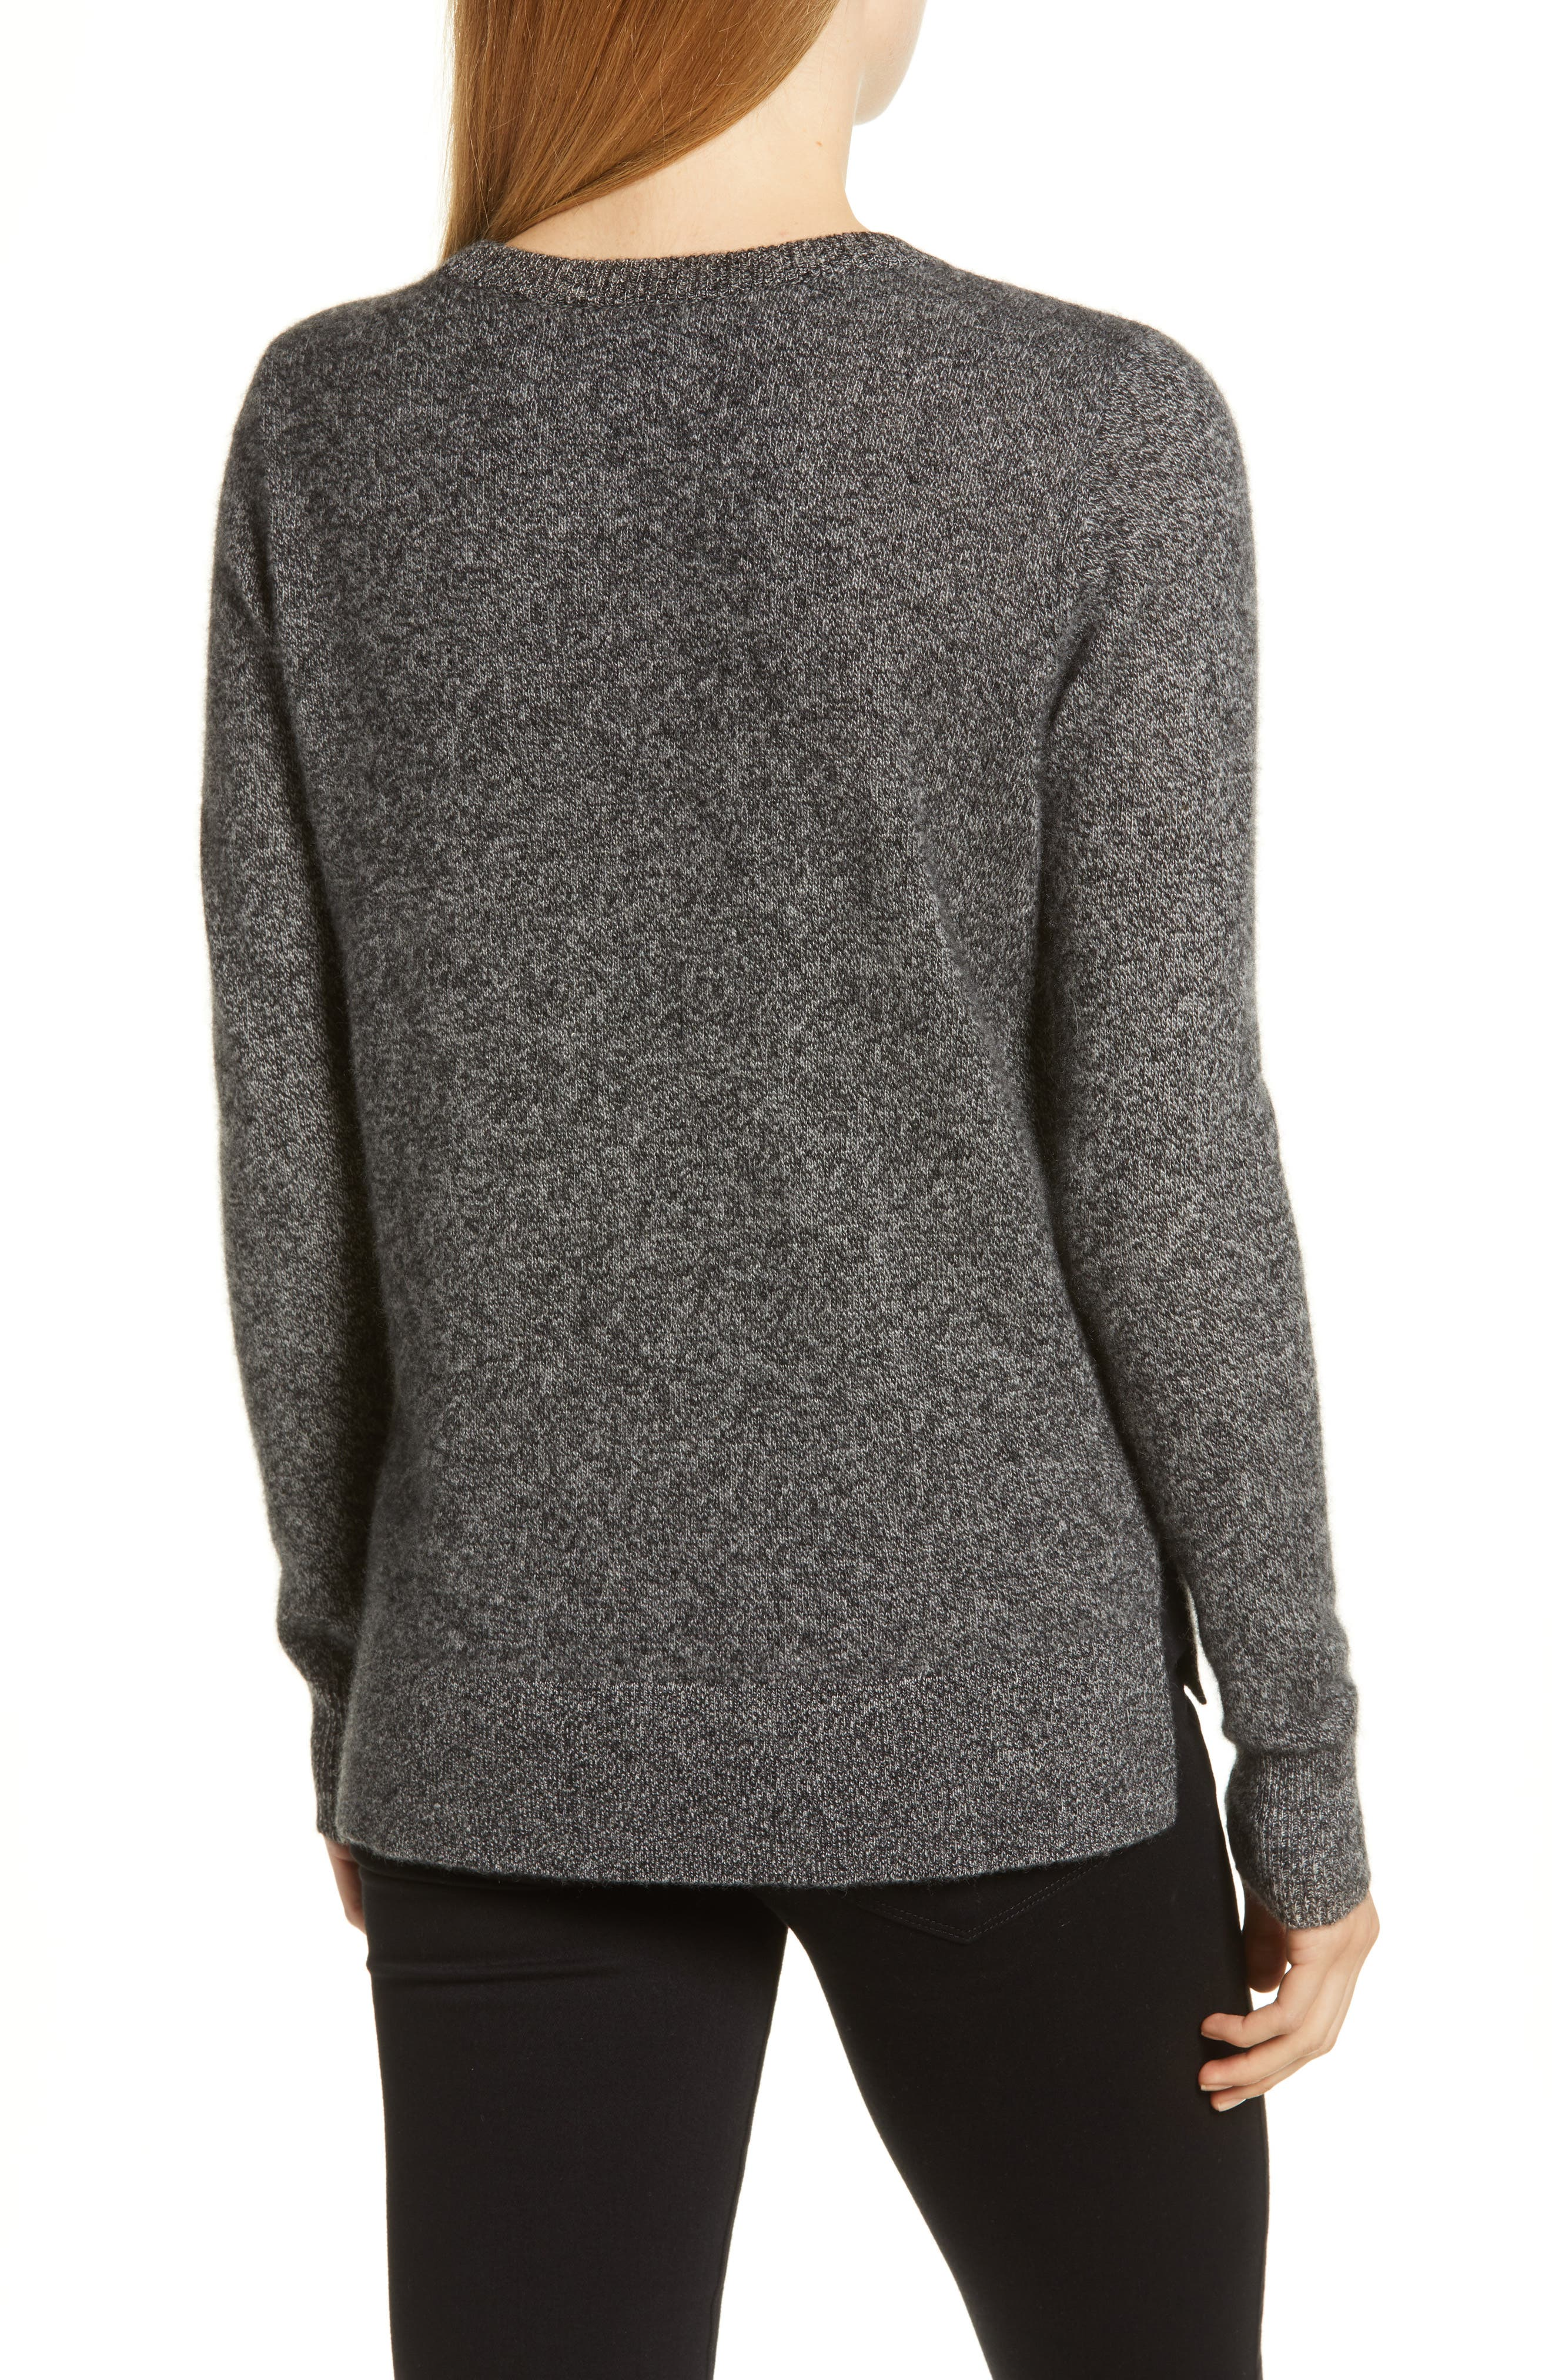 Crewneck Cashmere Sweater,                             Alternate thumbnail 2, color,                             BLACK- GREY MARL